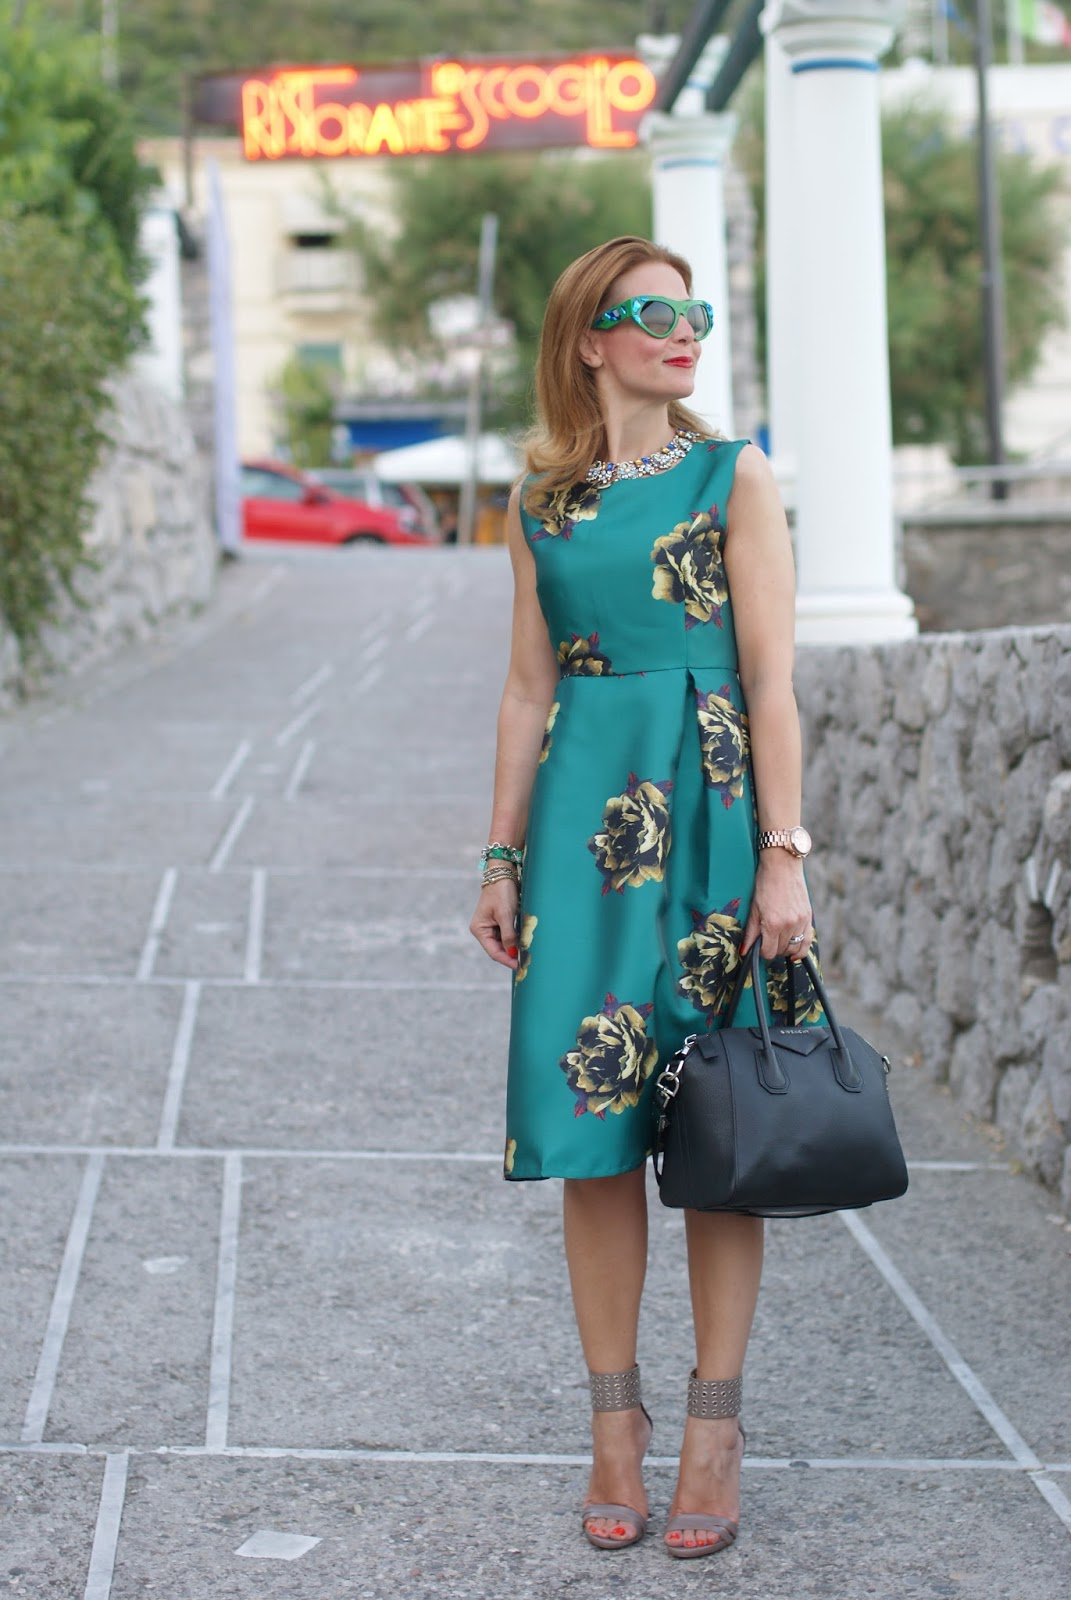 Choies green midi dress and Prada Voice sunglasses found on Giarre on Fashion and Cookies fashion blog, fashion blogger style